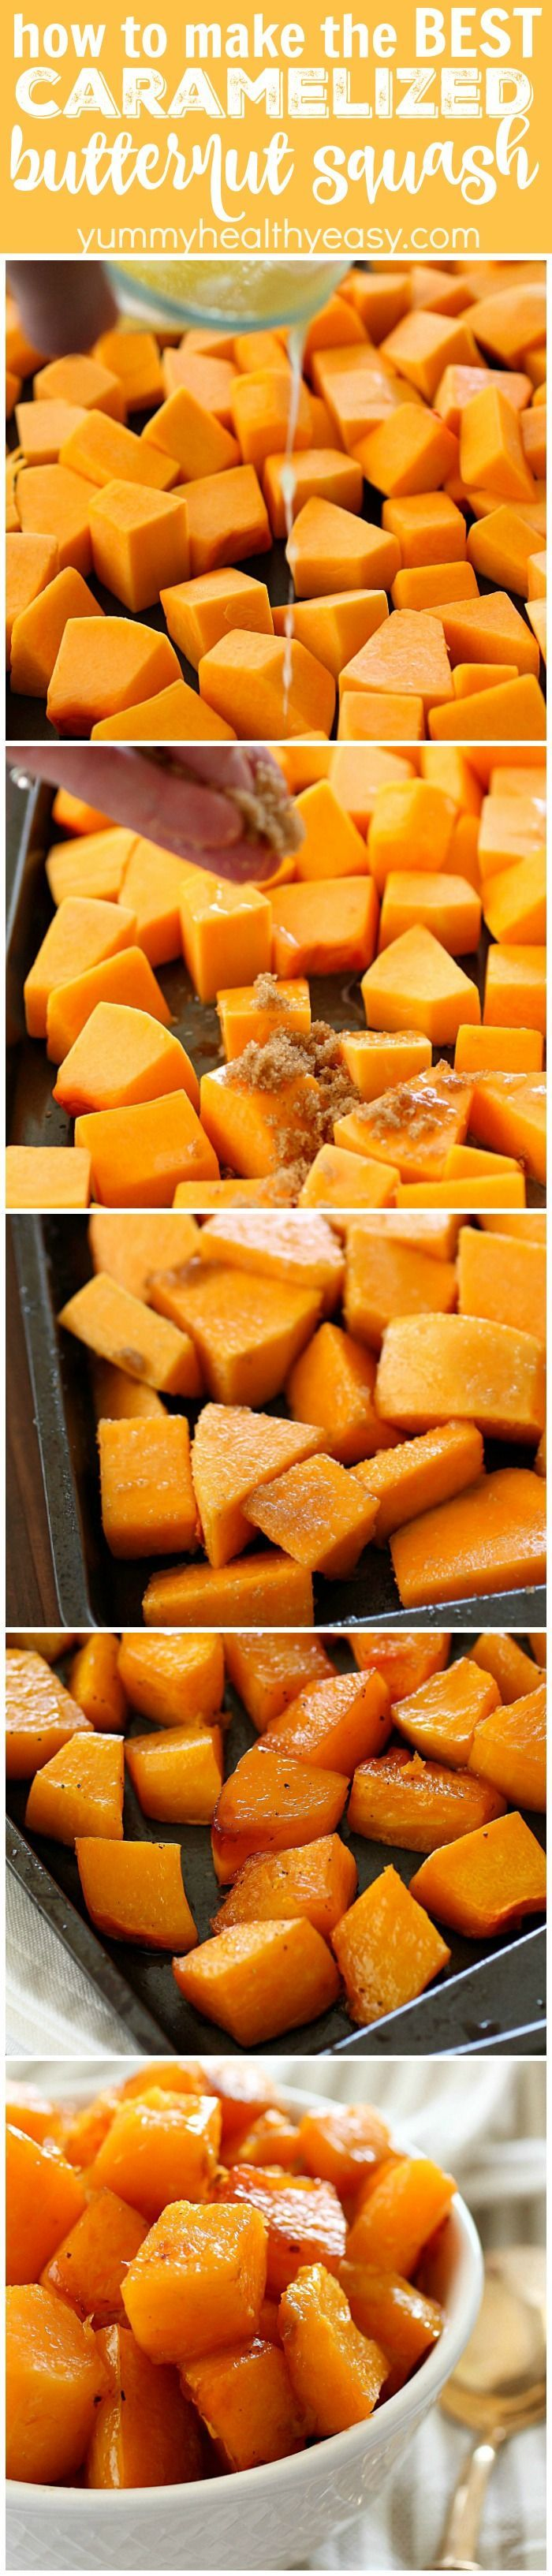 Caramelized Butternut Squash makes the tastiest side dish! It's one of the best…